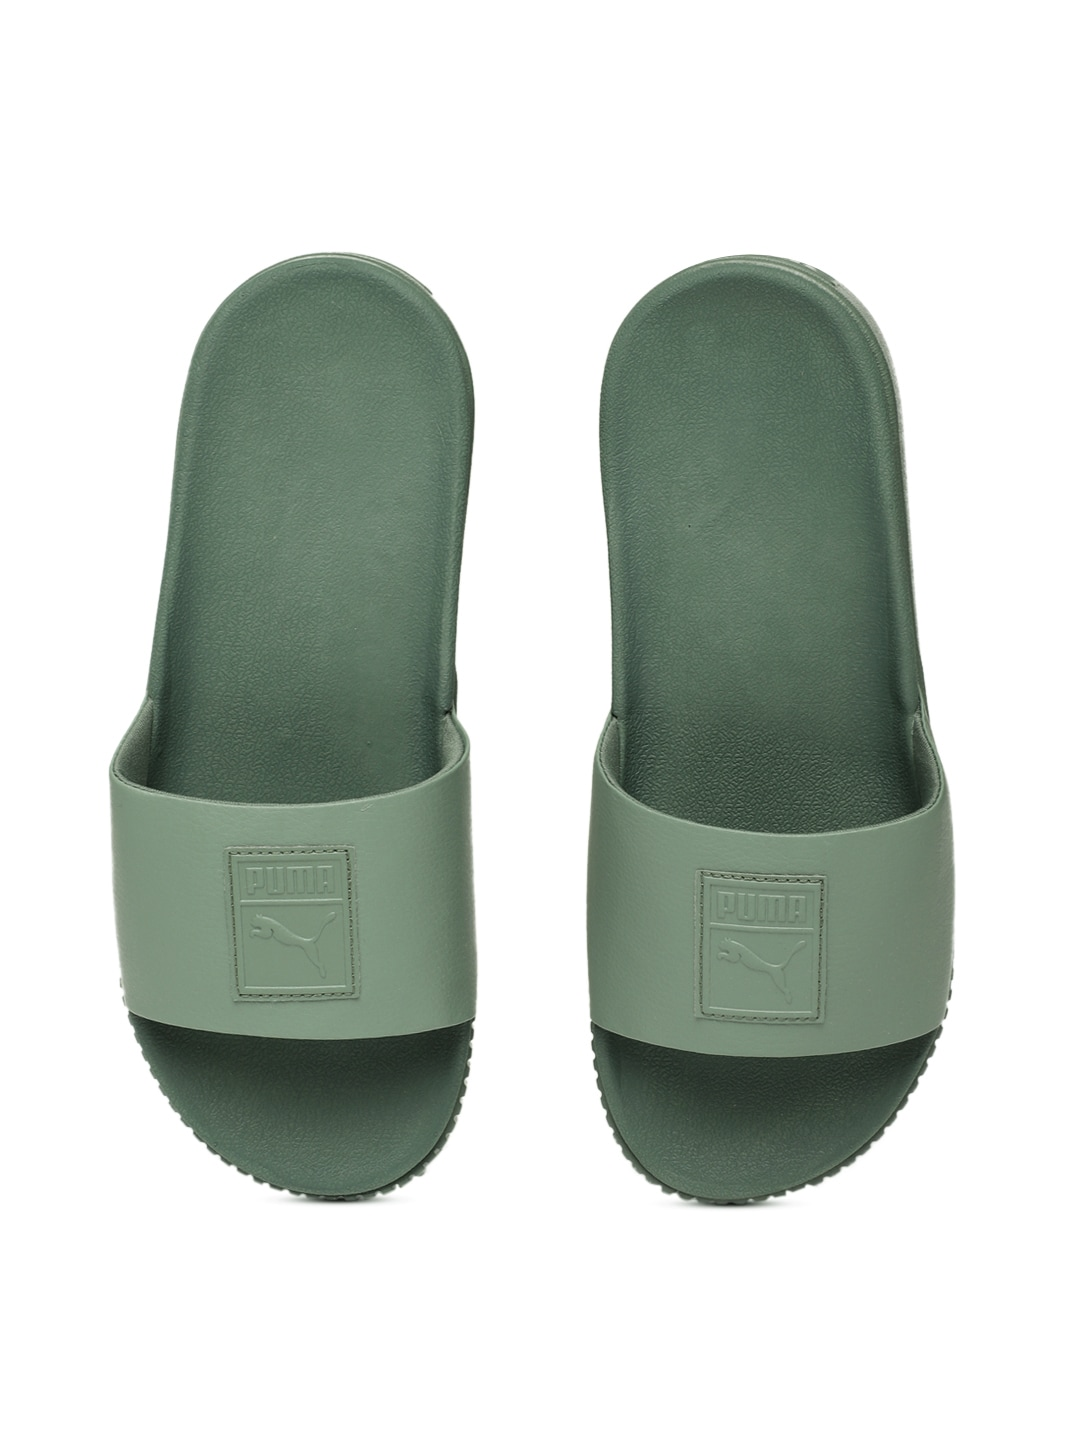 e53342d32f5f Puma Slippers - Buy Puma Slippers Online at Best Price